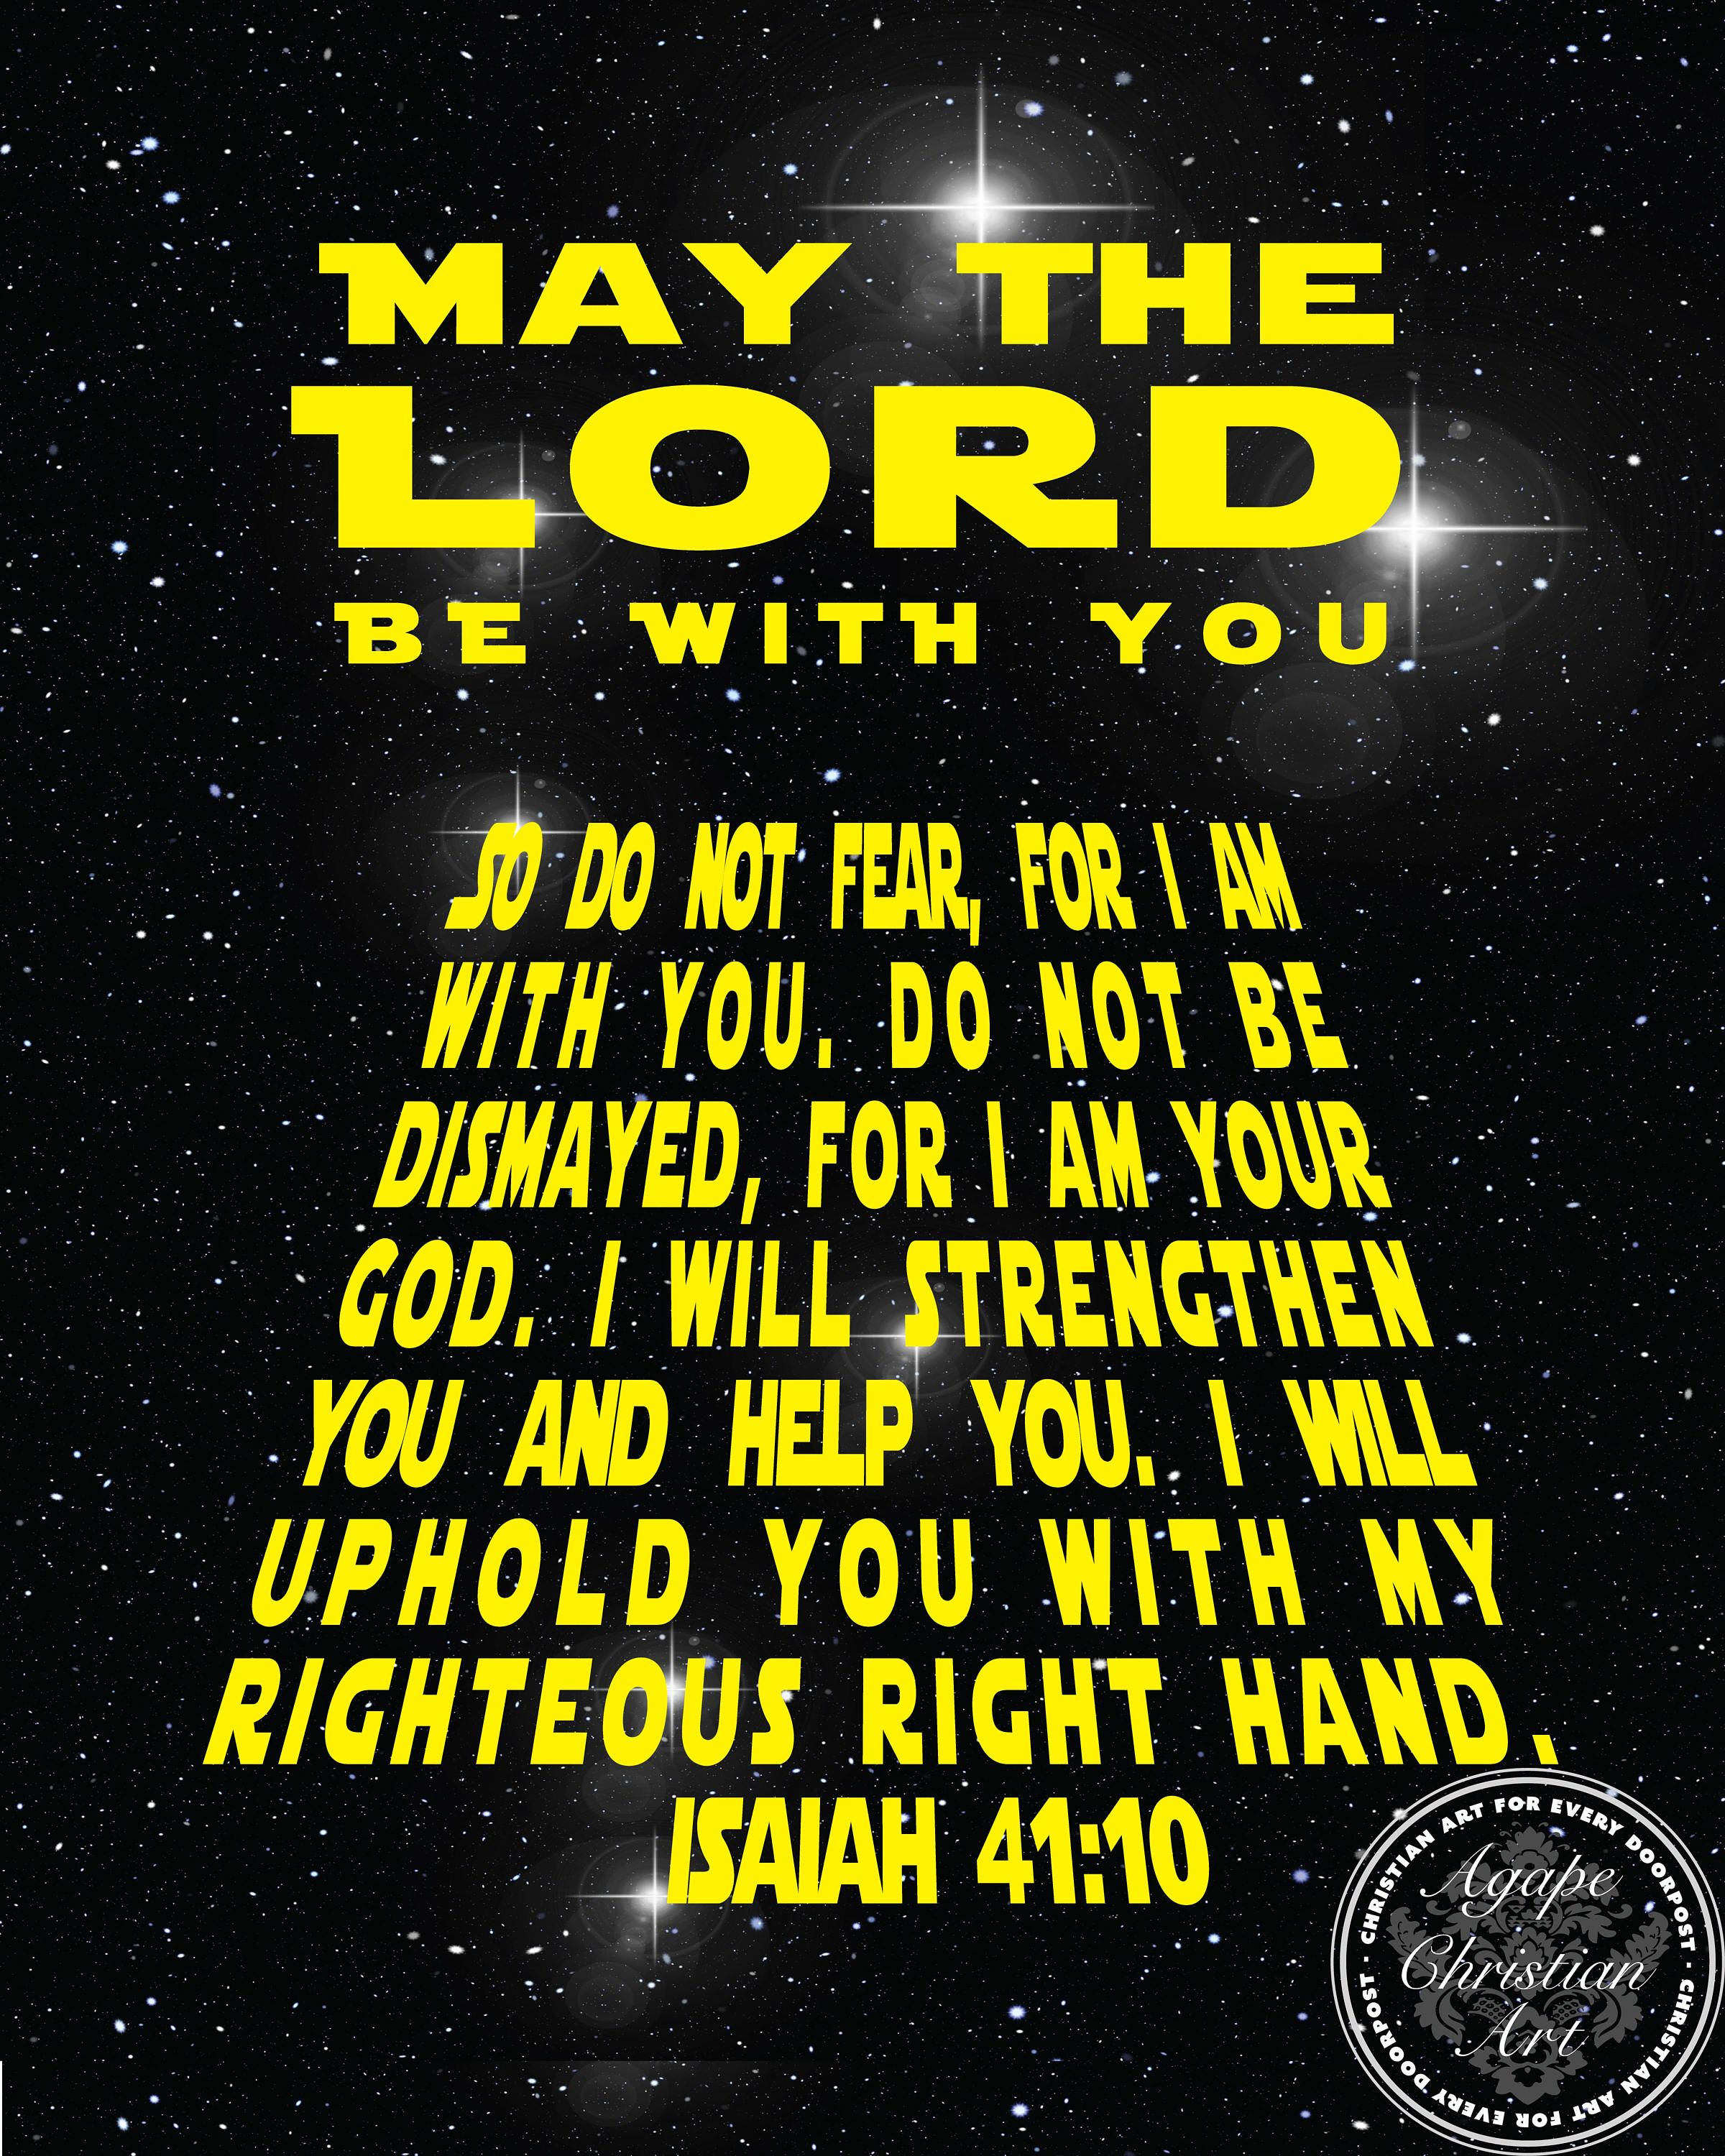 The Lord Be With You | Isaiah 41:10 | Bible Verses | Christian Wall ...